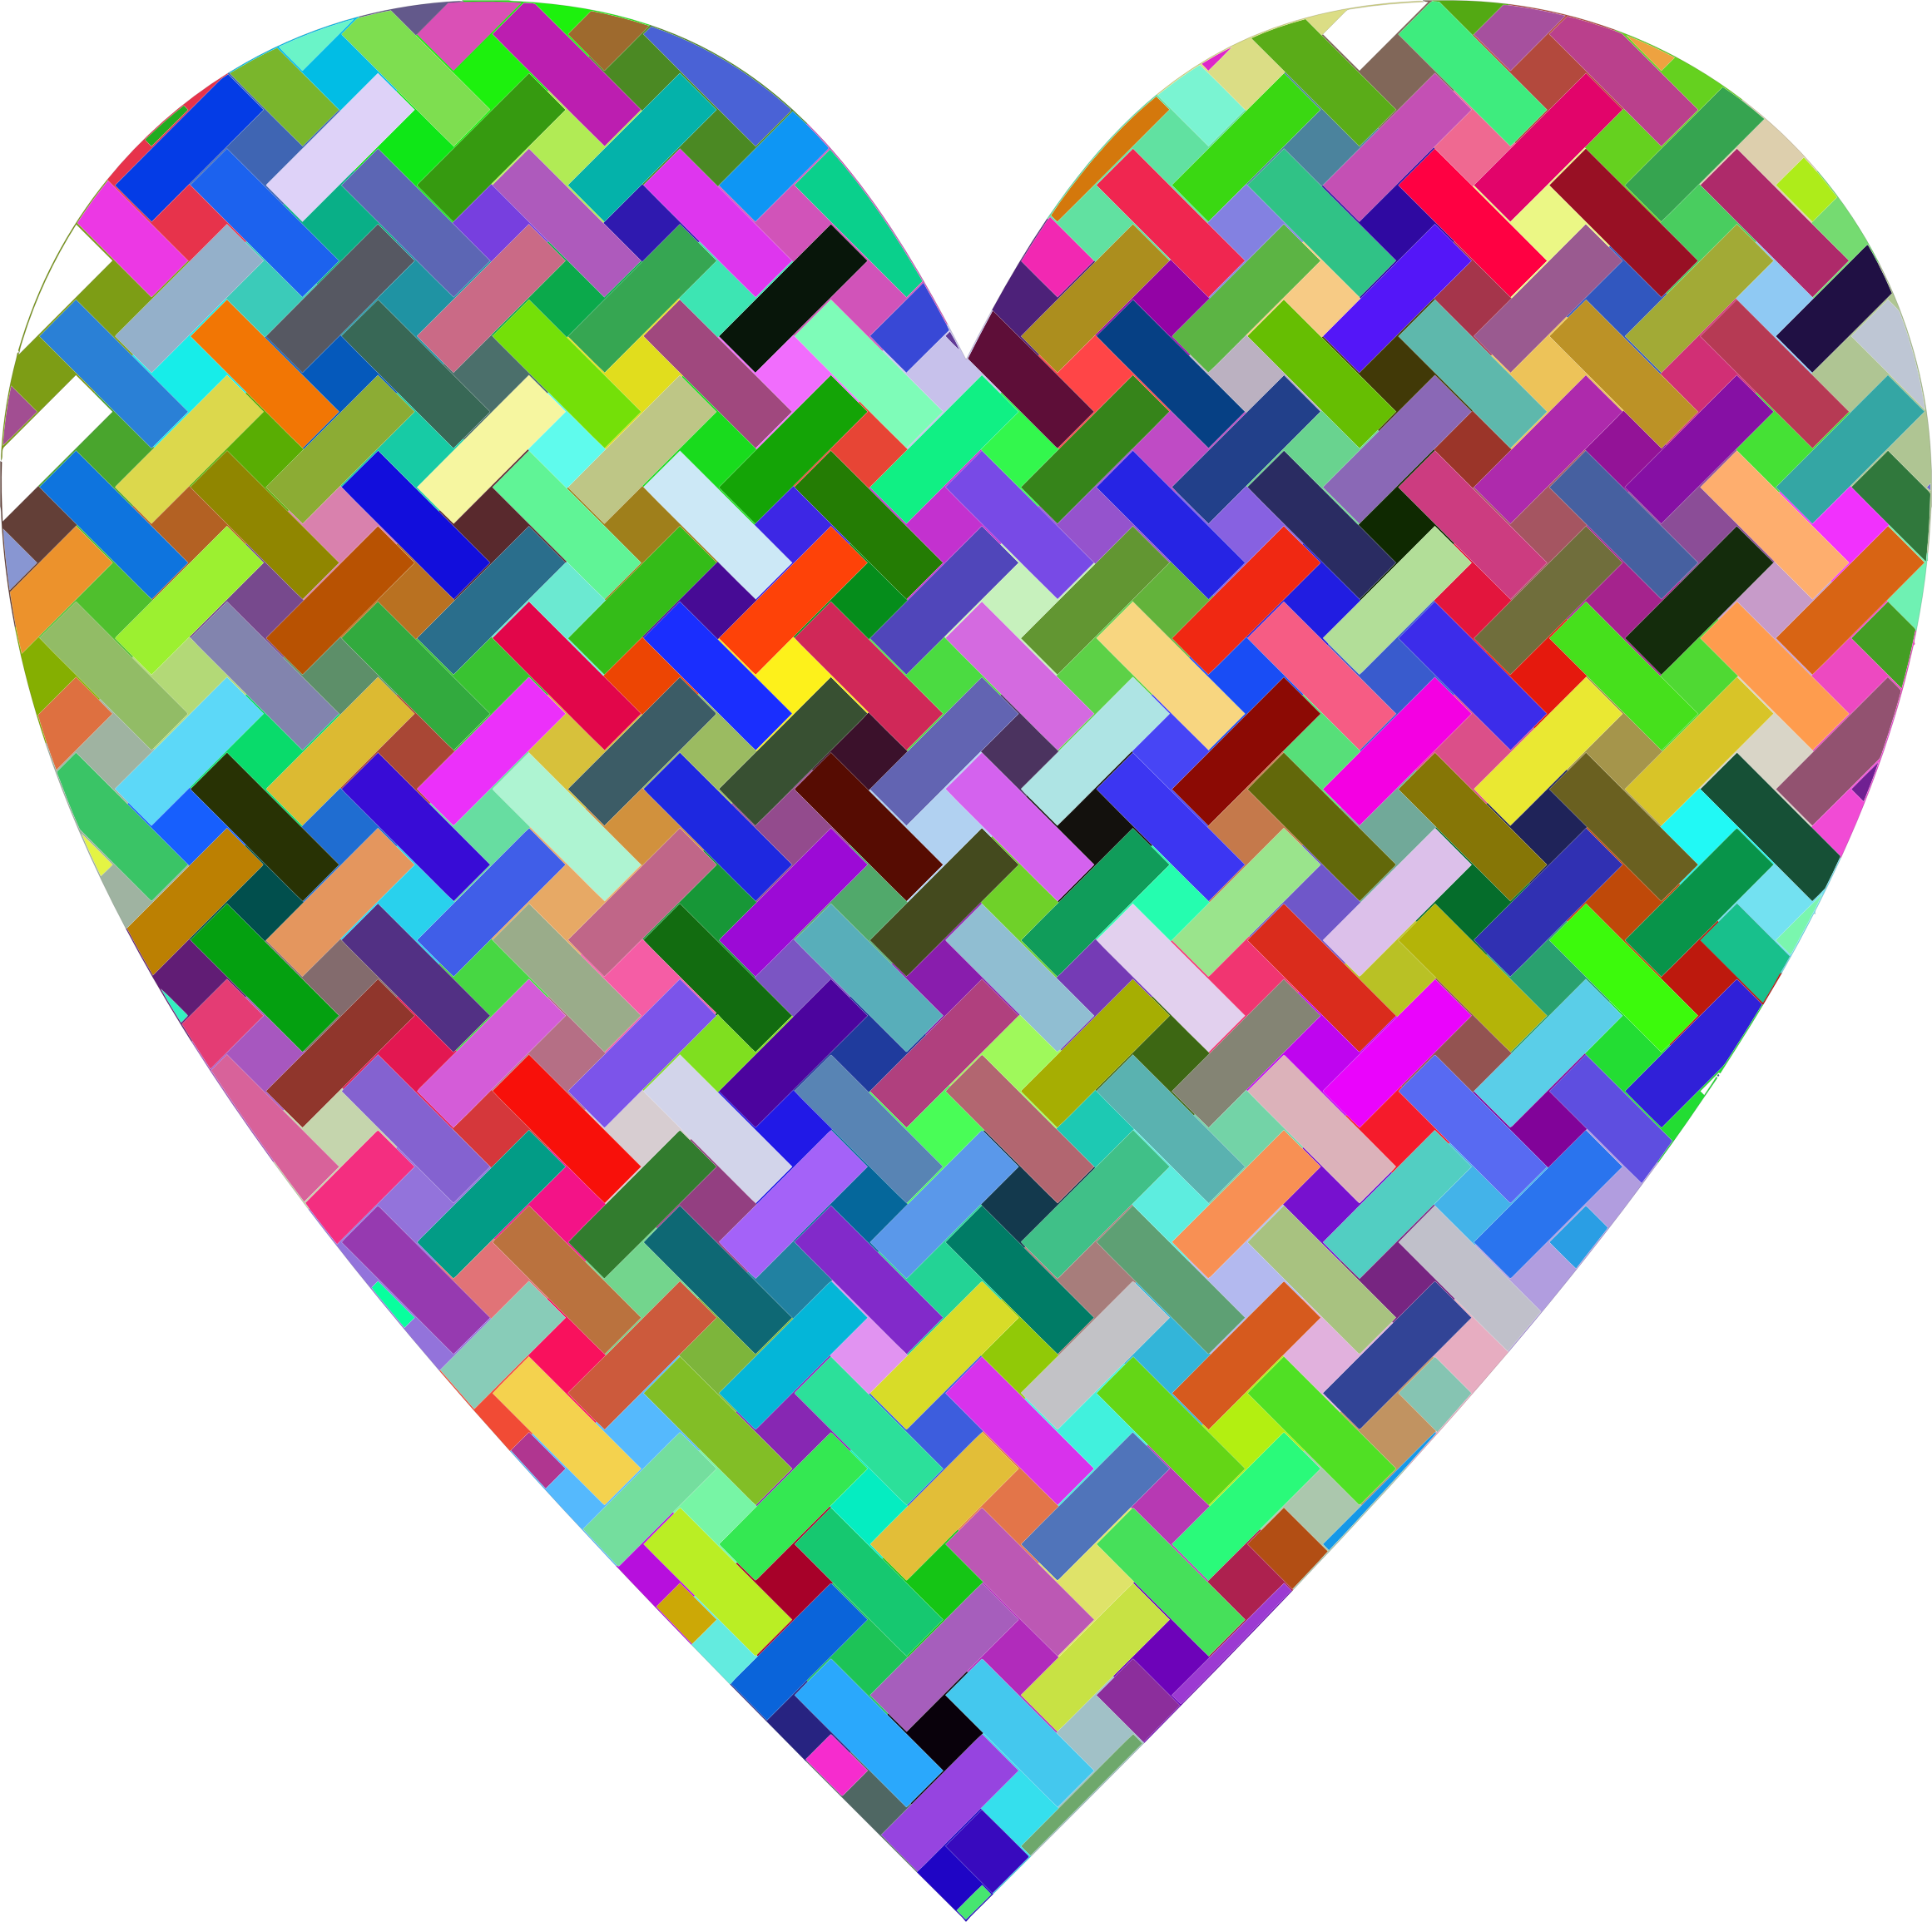 Colorful Heart Lattice Weave by GDJ